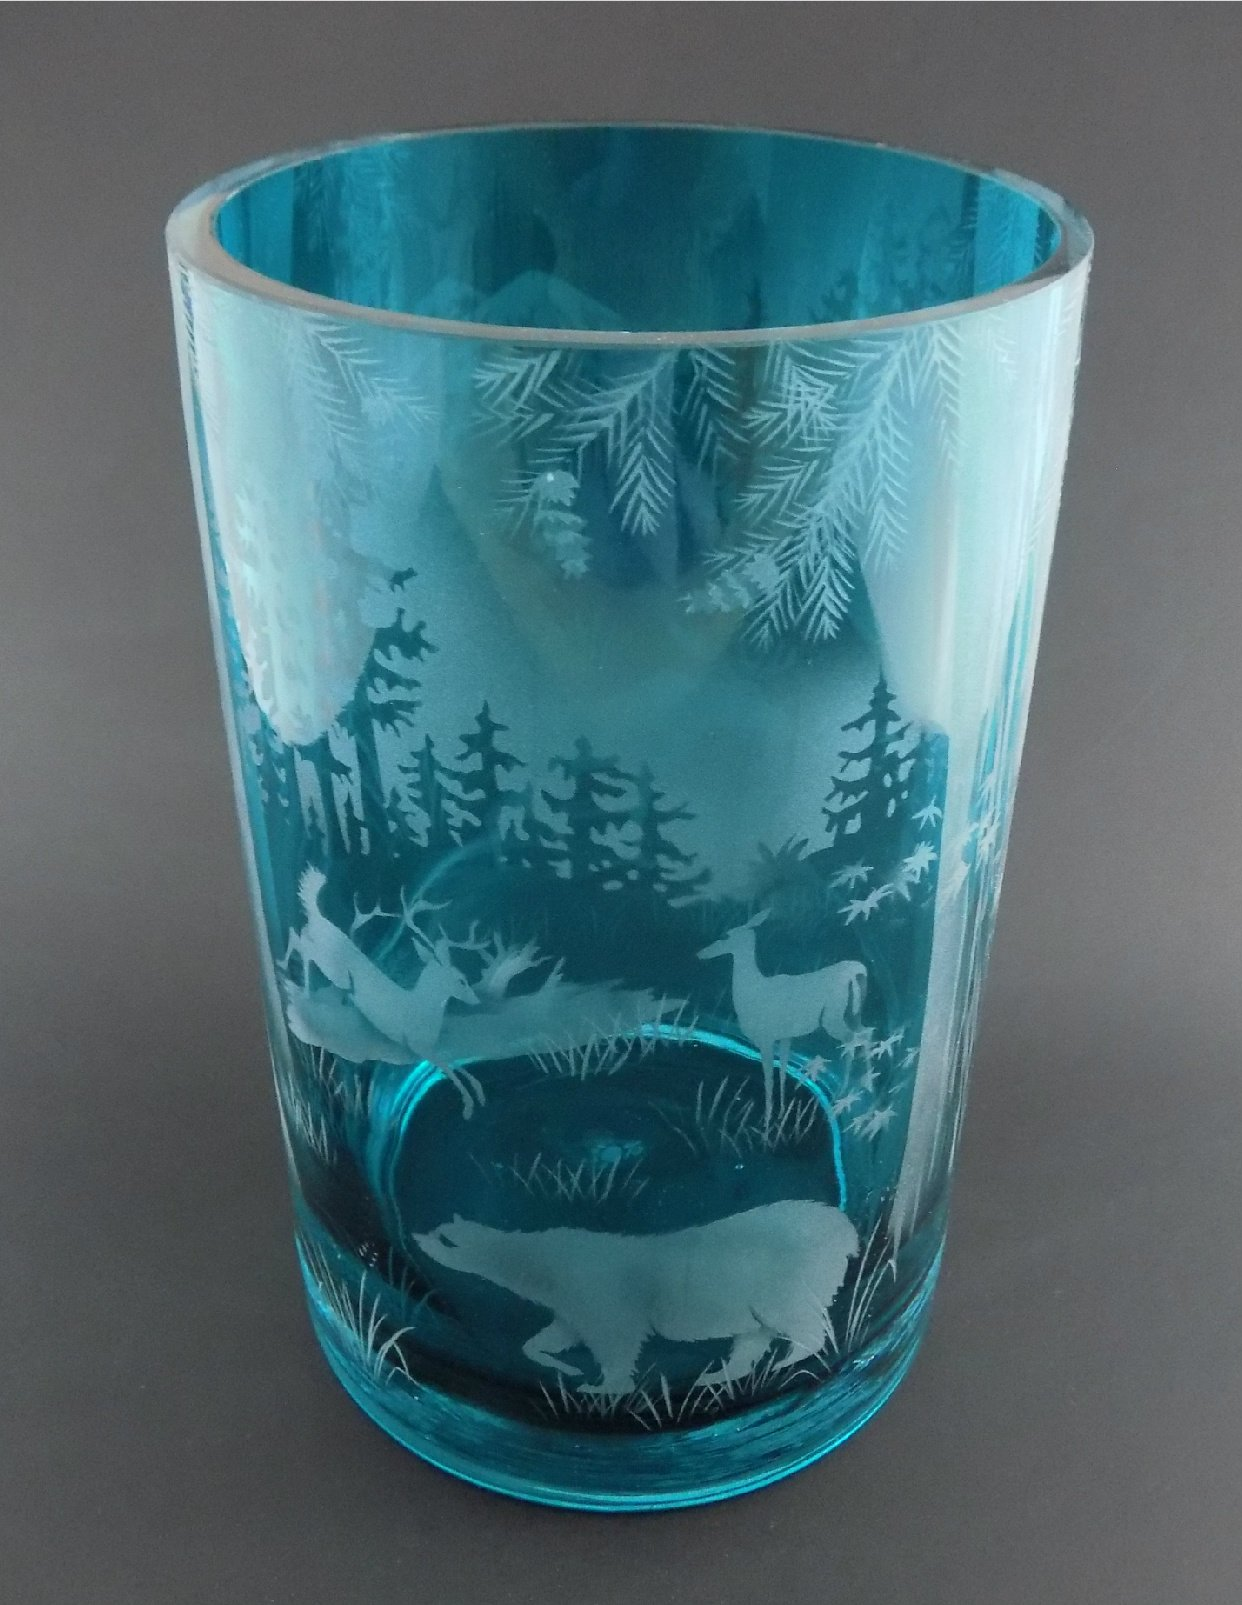 IncisoArt Hand Etched Glass Vase Permanently Sandblasted (Sand Carved) Handmade Engraved Tabletop Centerpiece (Round 8 Inch x 5 Inch, Teal Forest Mountain Wildlife Animal Combo)